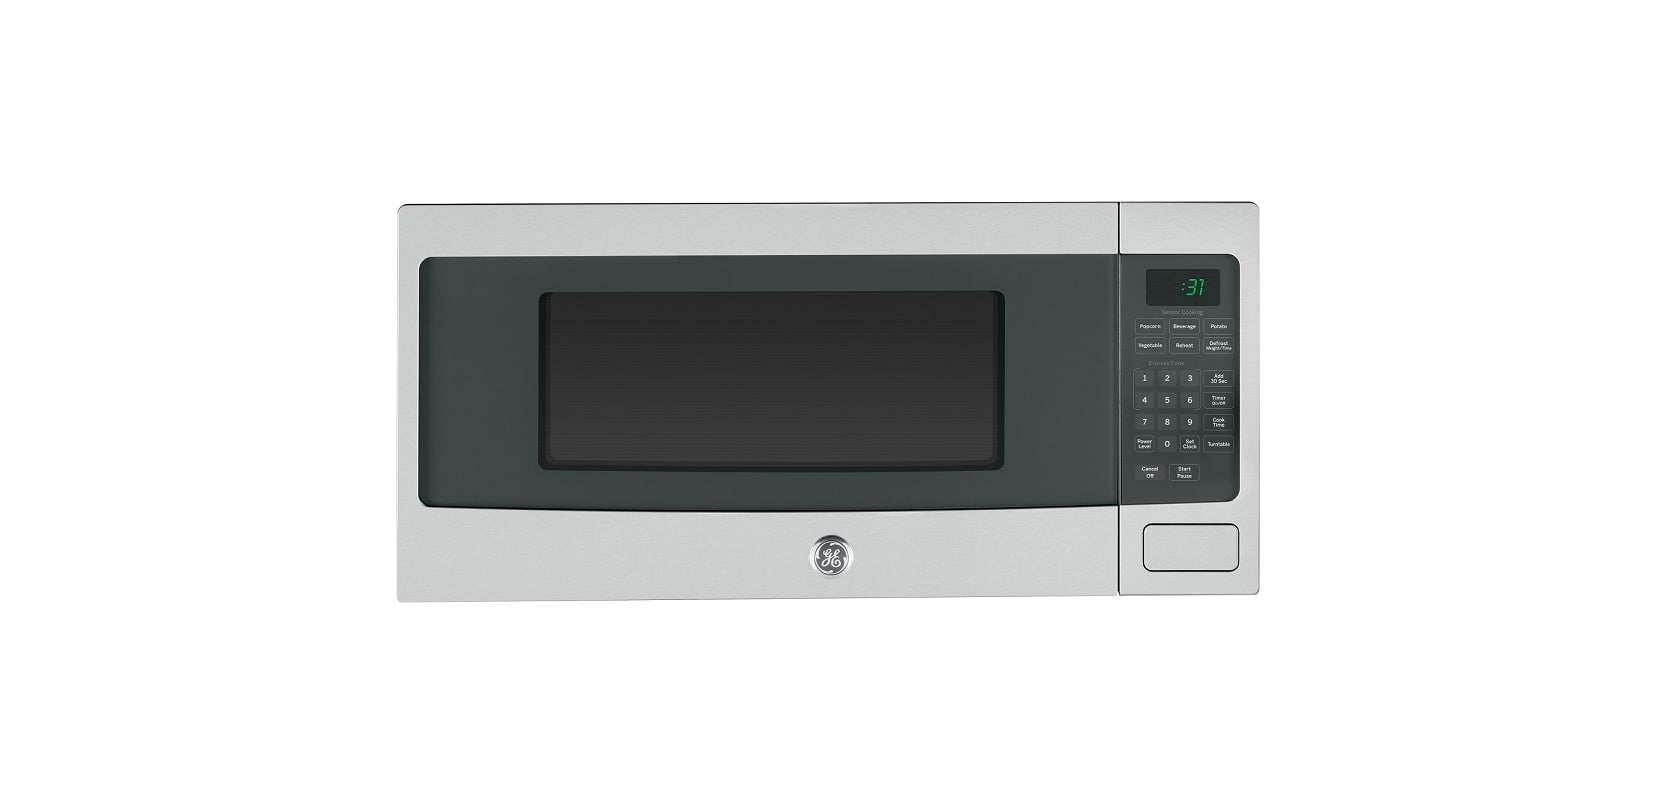 GE PEM31F Profile 24 Inch Wide 1.1 Cu. Ft. Countertop Microwave with Built-In Ca photo